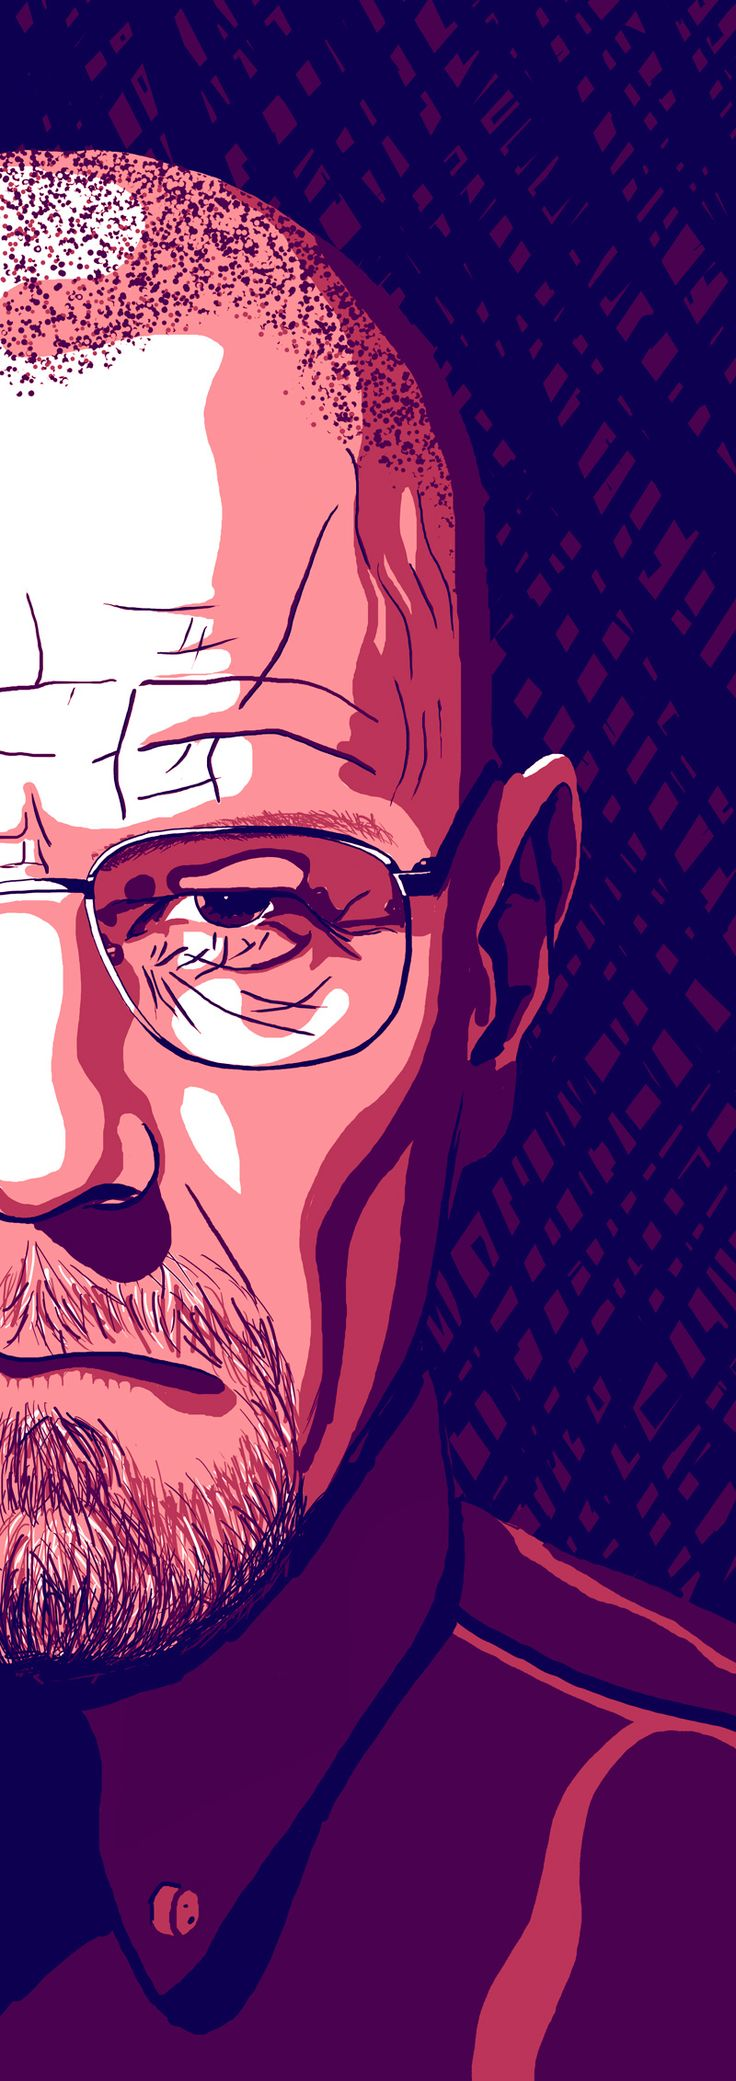 Breaking Bad - Walter White